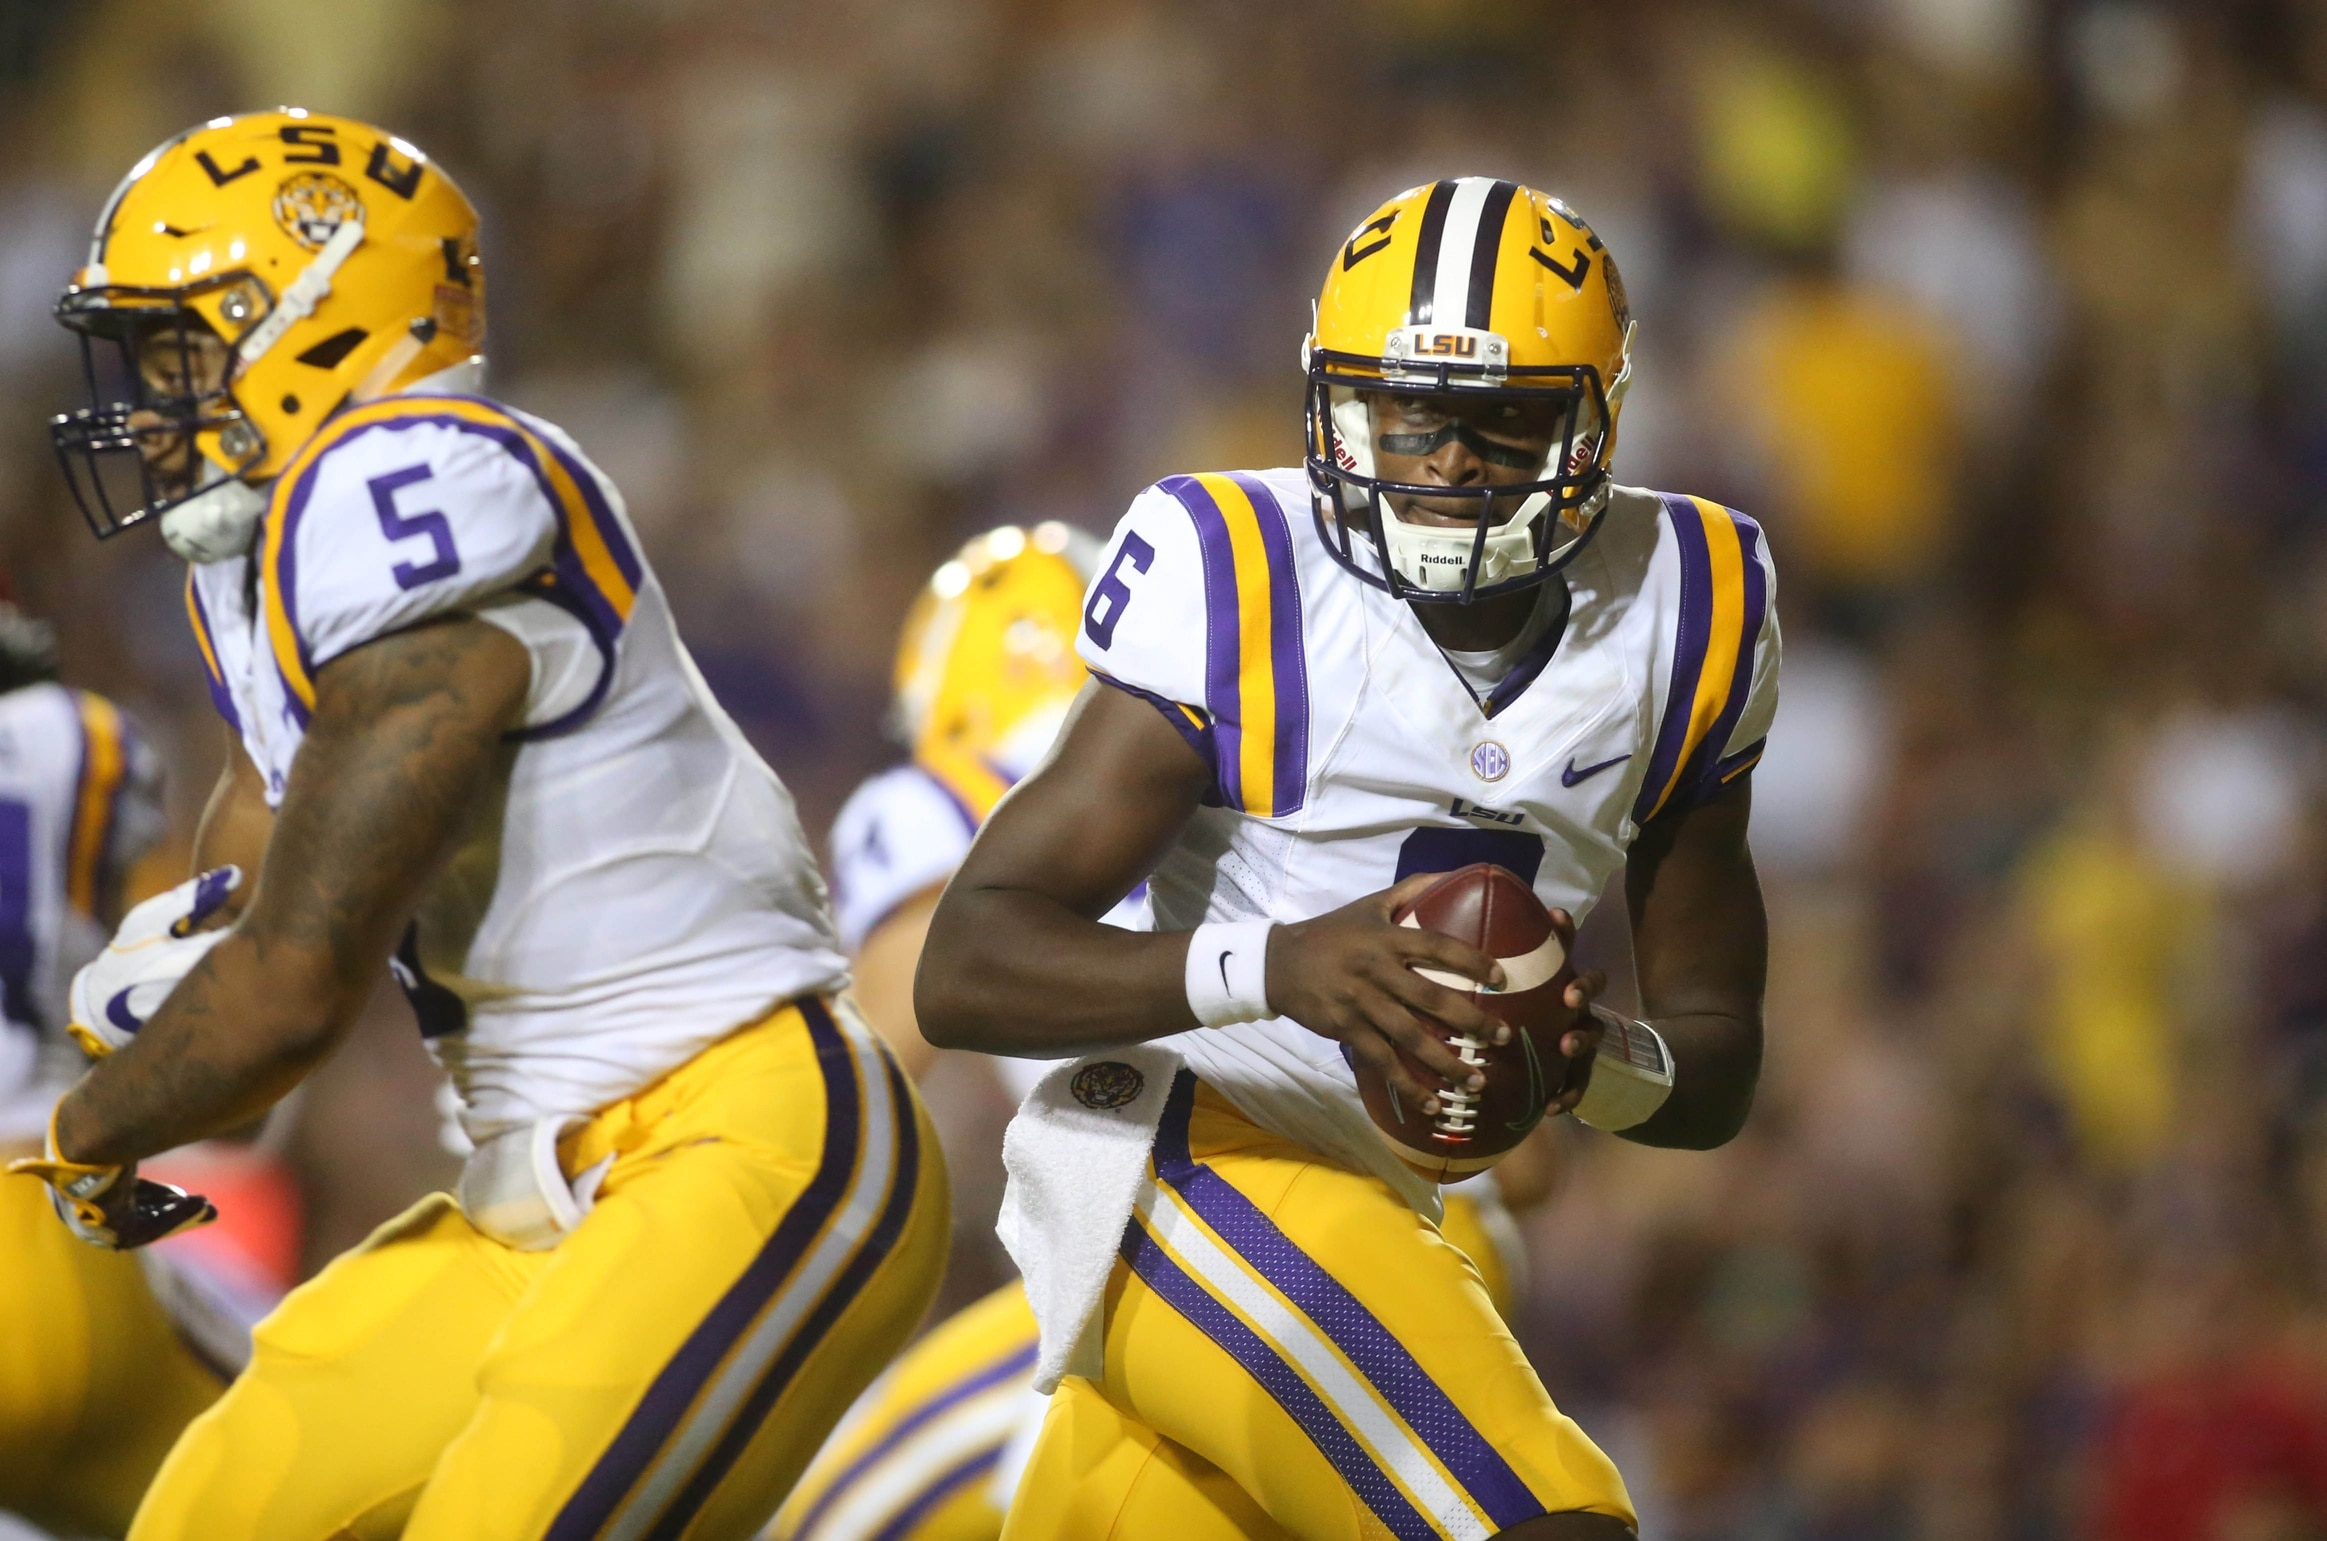 Sep 10, 2016; Baton Rouge, LA, USA; LSU Tigers quarterback Brandon Harris (6) looks to pass the ball in the first quarter against the Jacksonville State Gamecocks at Tiger Stadium. Mandatory Credit: Crystal LoGiudice-USA TODAY Sports